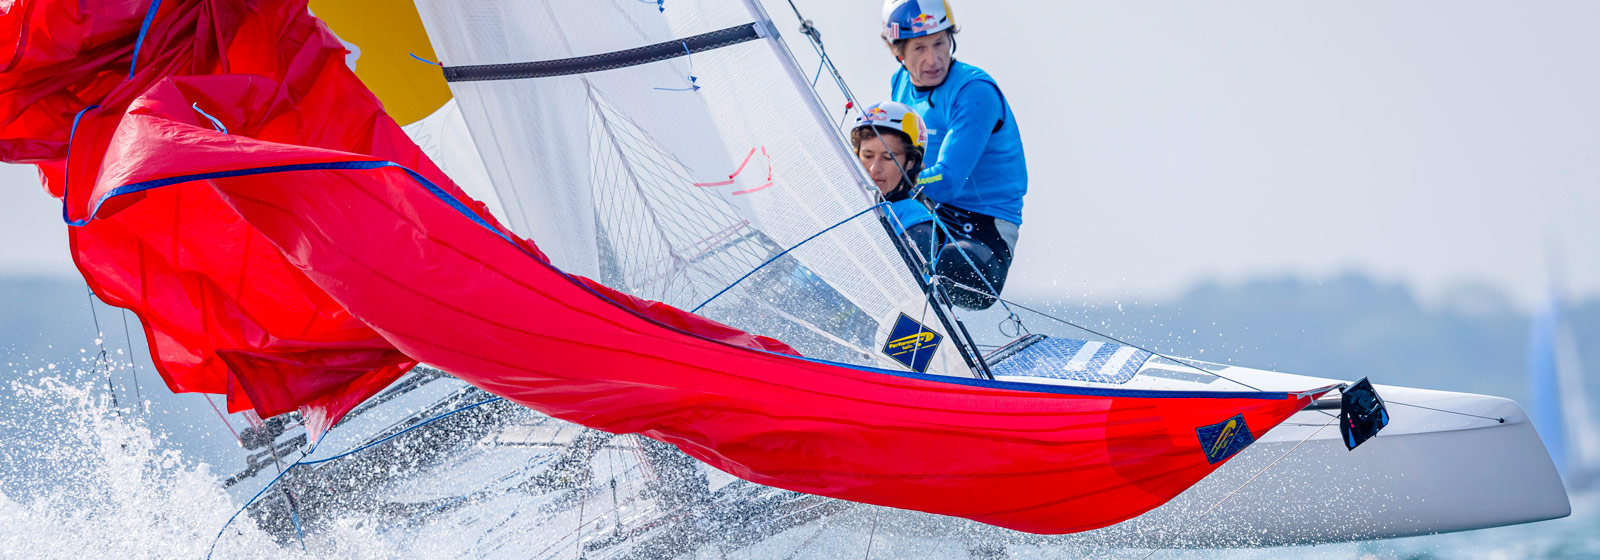 Two sailors on a Nacra 17